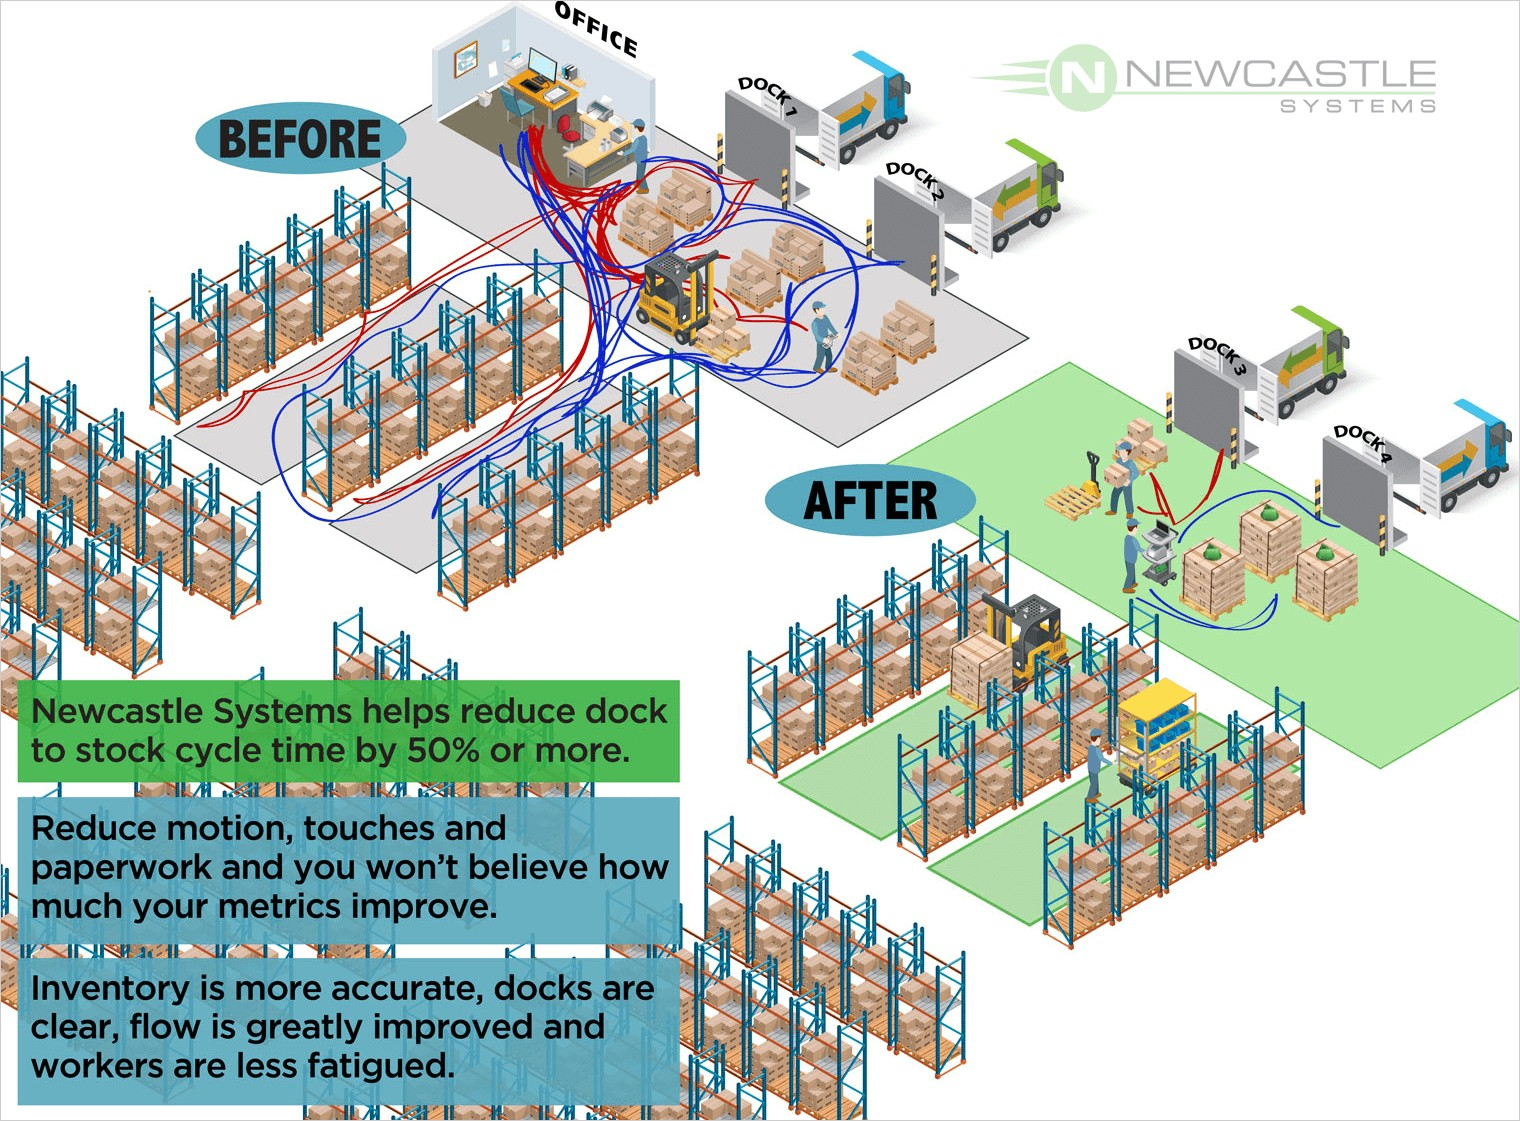 Warehouse-Dock-to-Stock-Before-After-1.jpg